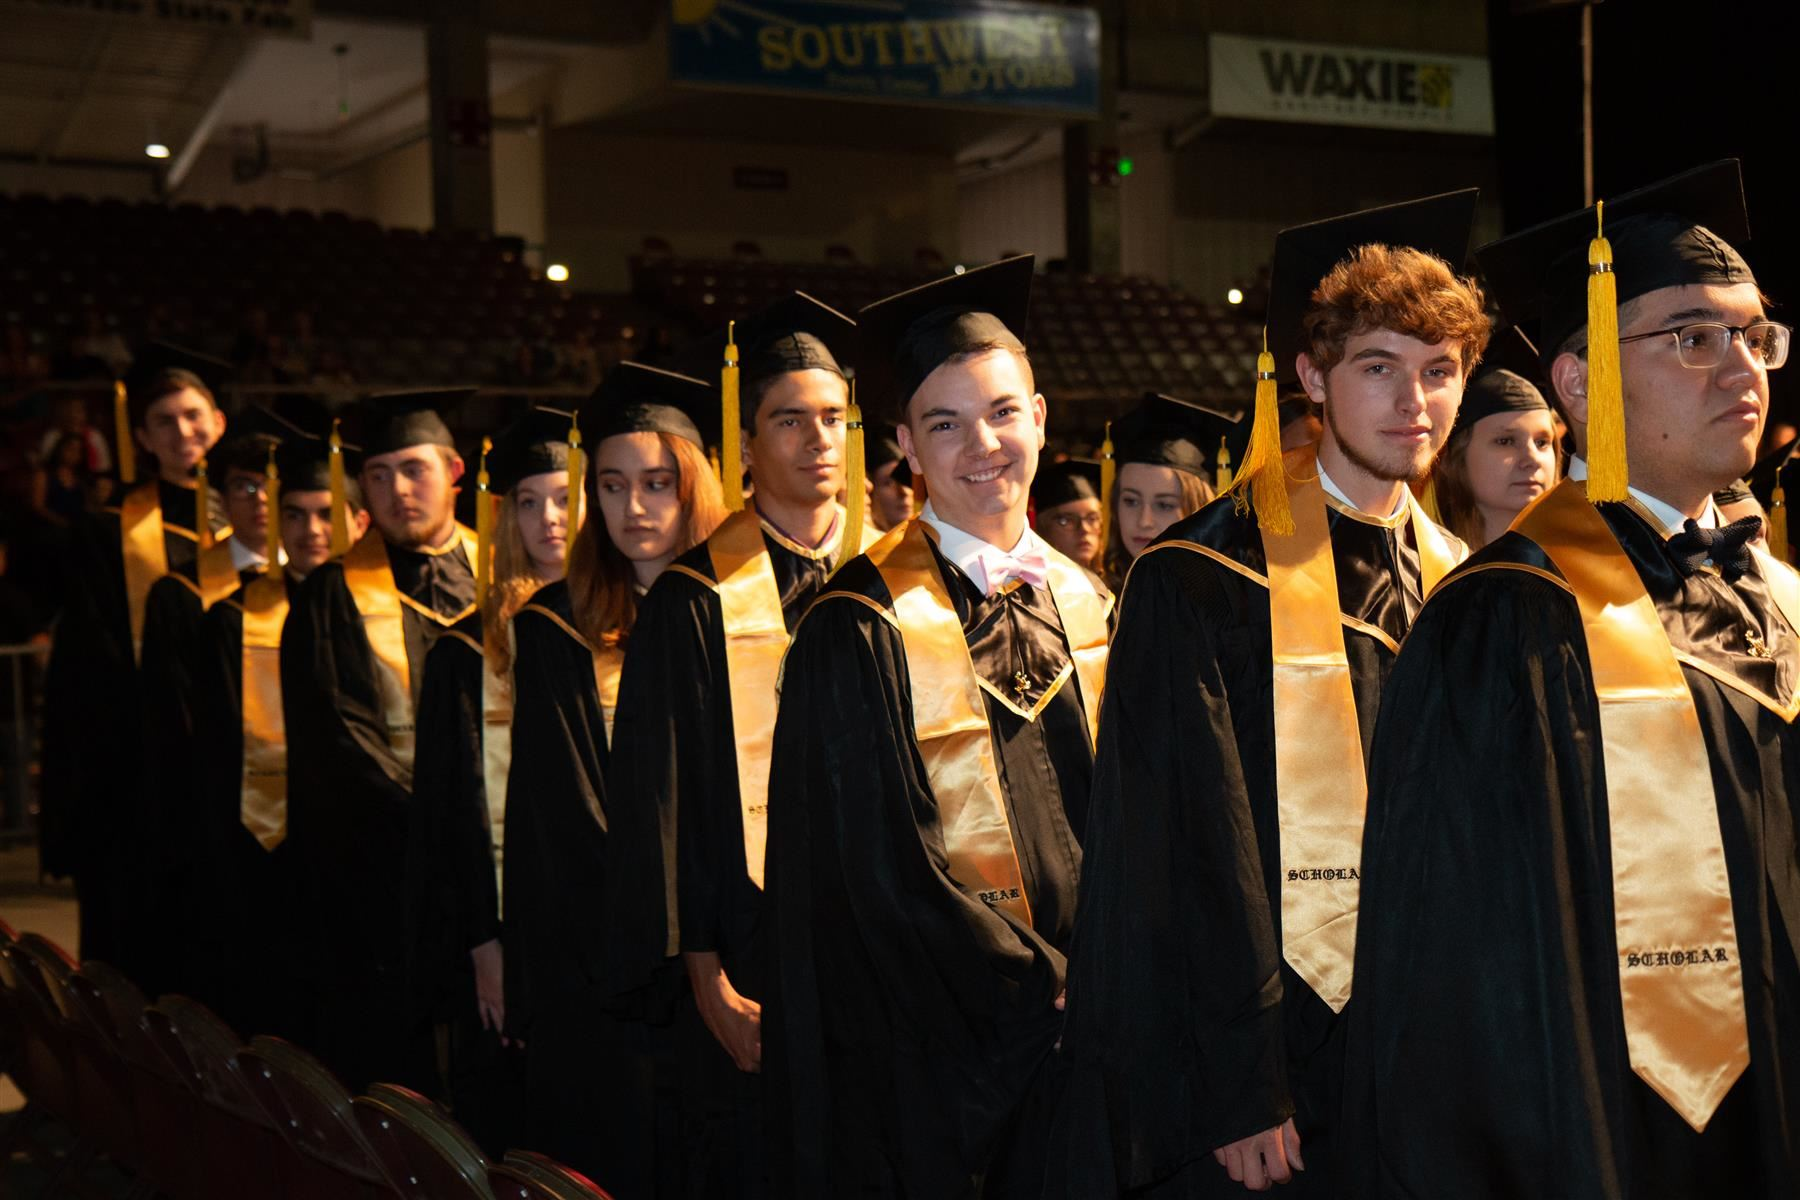 East High School students at graduation in 2019.